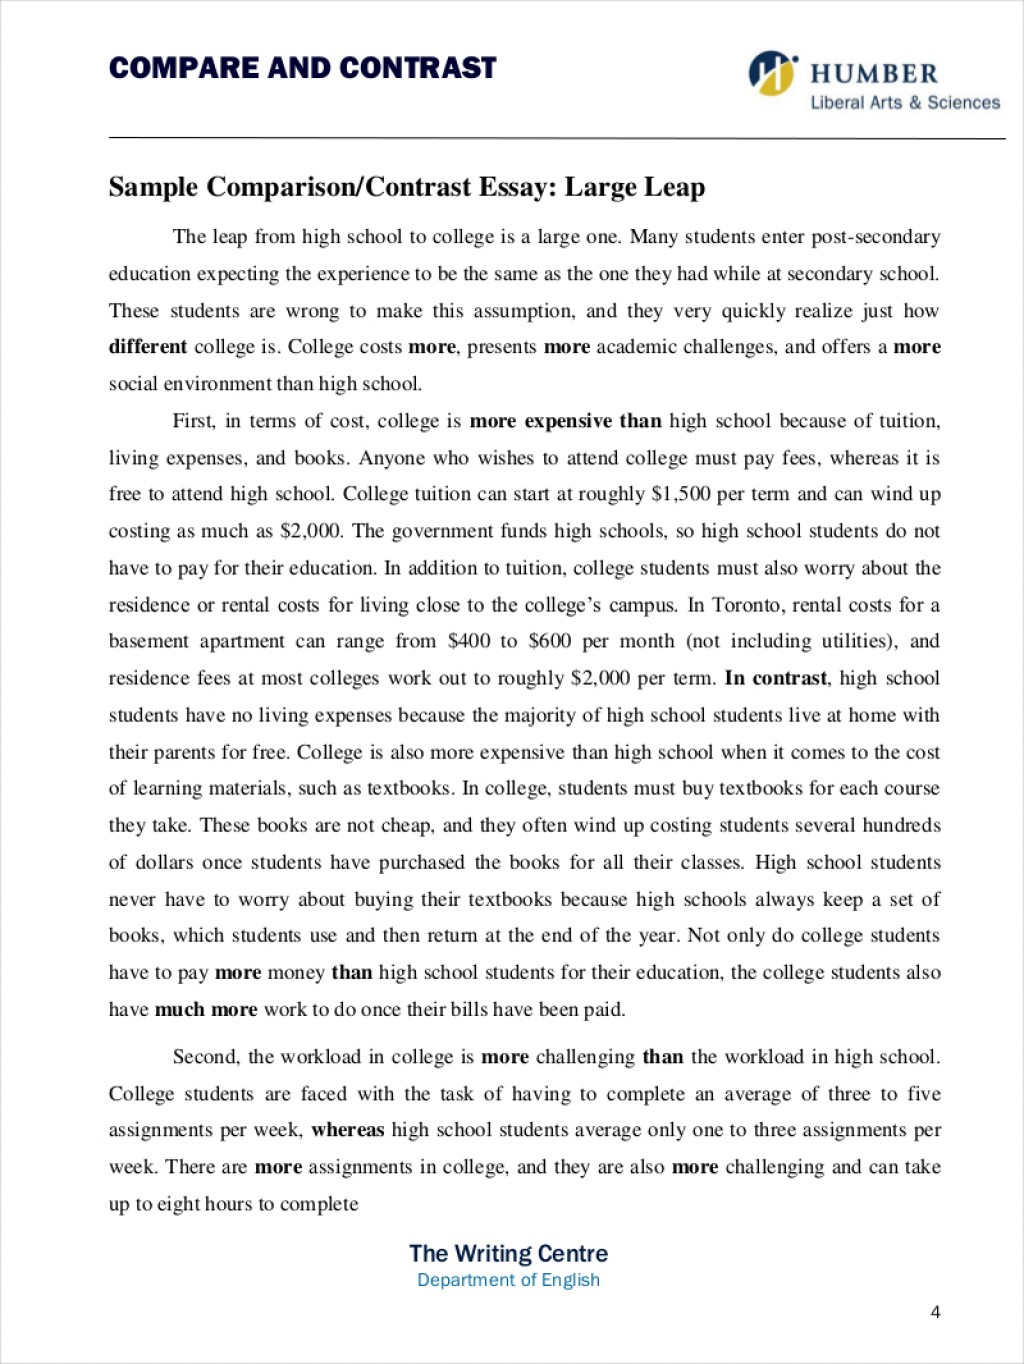 014 How To Write Compare And Contrast Essay Example Comparative Samples Free Pdf Format Download Throughout Examples Comparison Thesis Coles Thecolossus Co Within Ex Outstanding A On Two Poems An Introduction Conclusion For Middle School Large